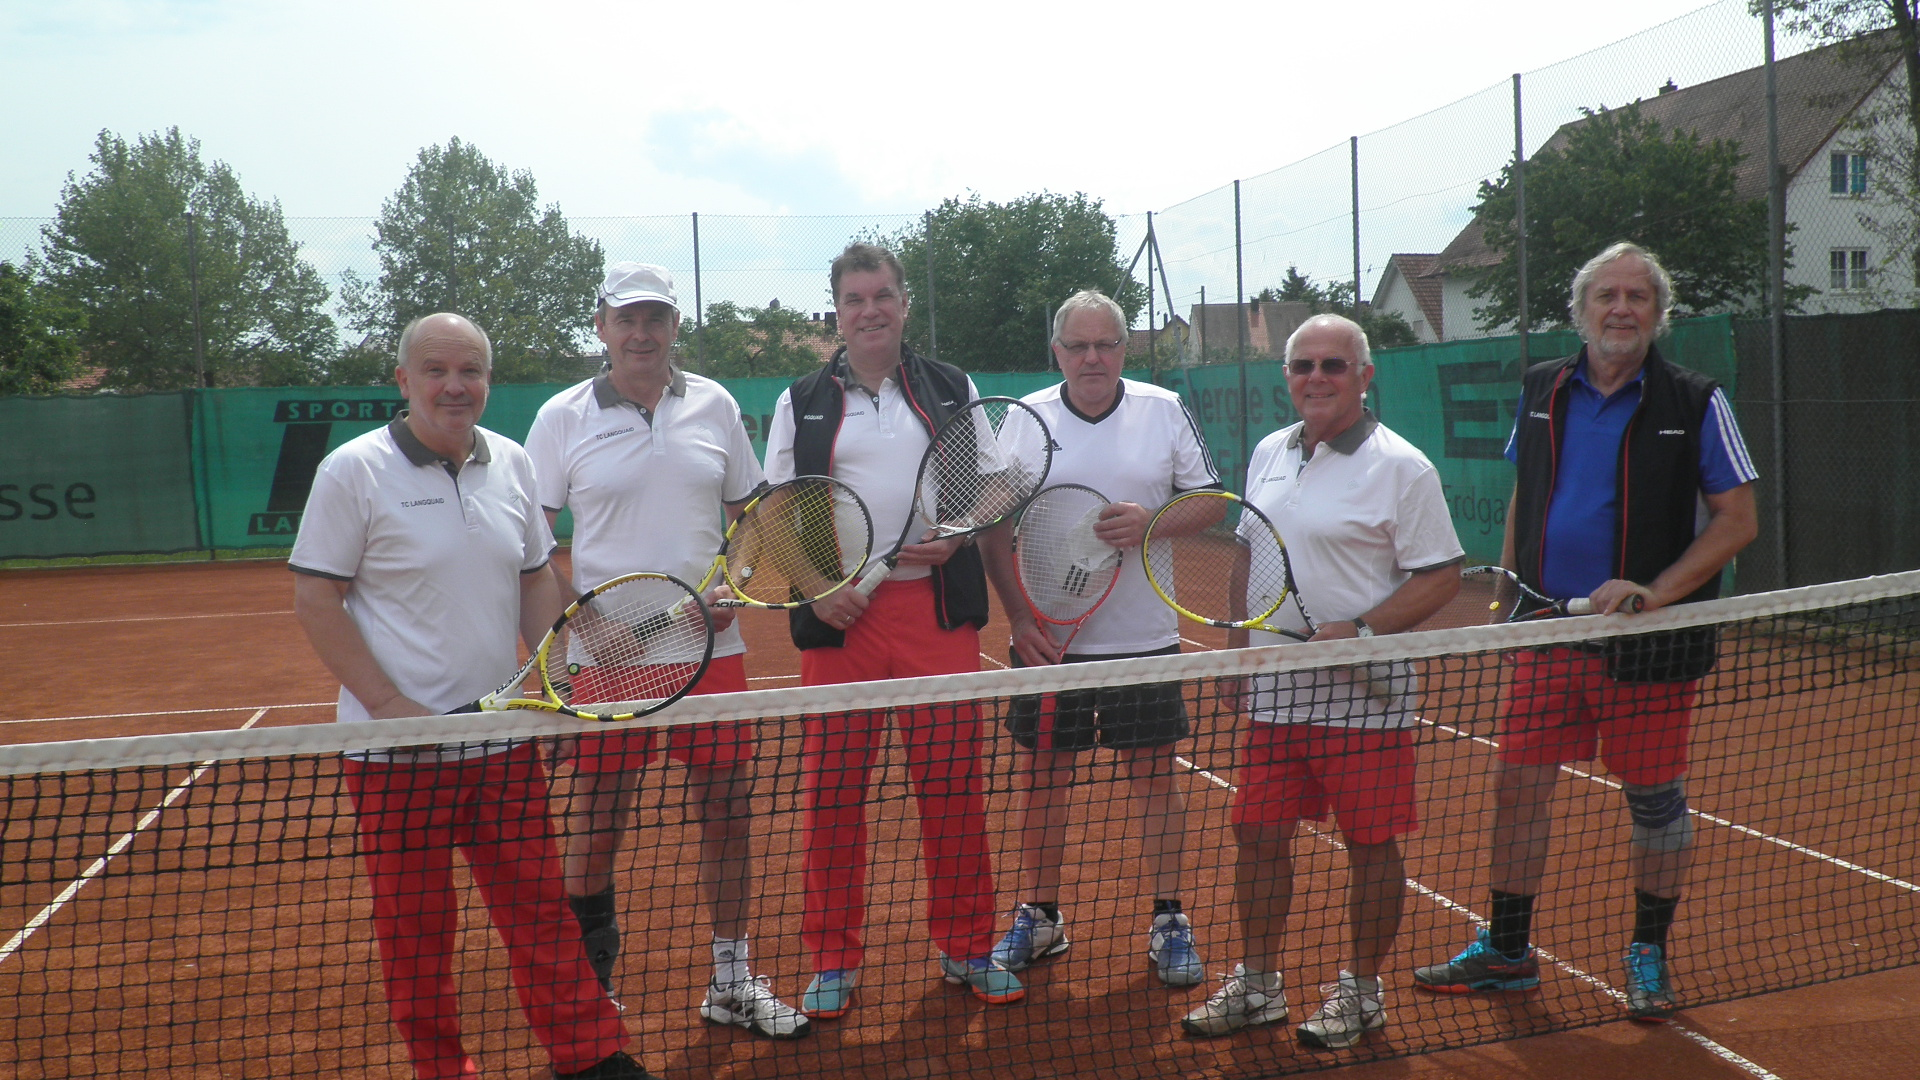 Sommer-Doppel-Cup beim TC langquaid